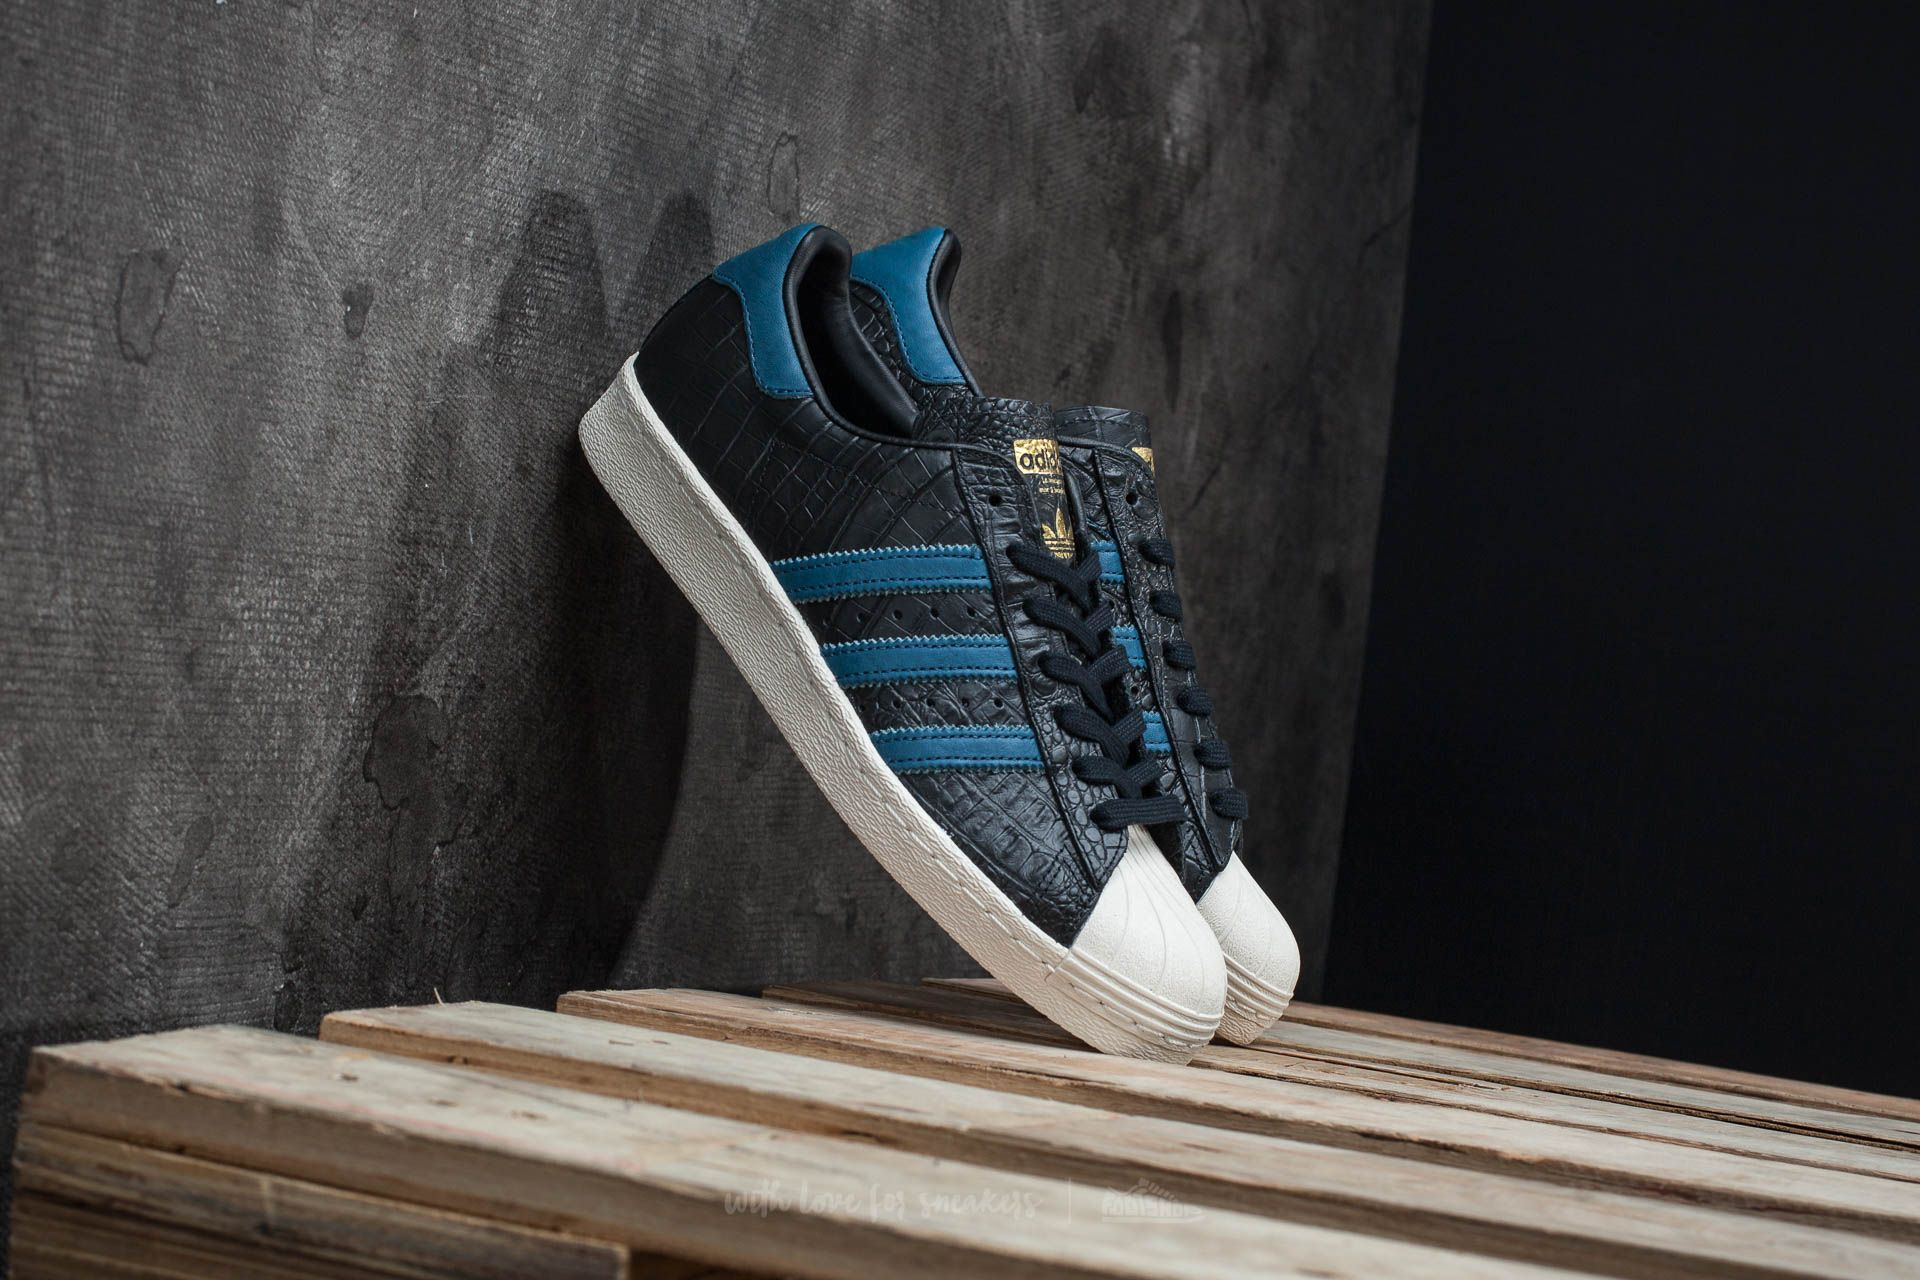 designer fashion 4b283 5e624 adidas Superstar 80s. Core Black  Blue  Gold Metallic